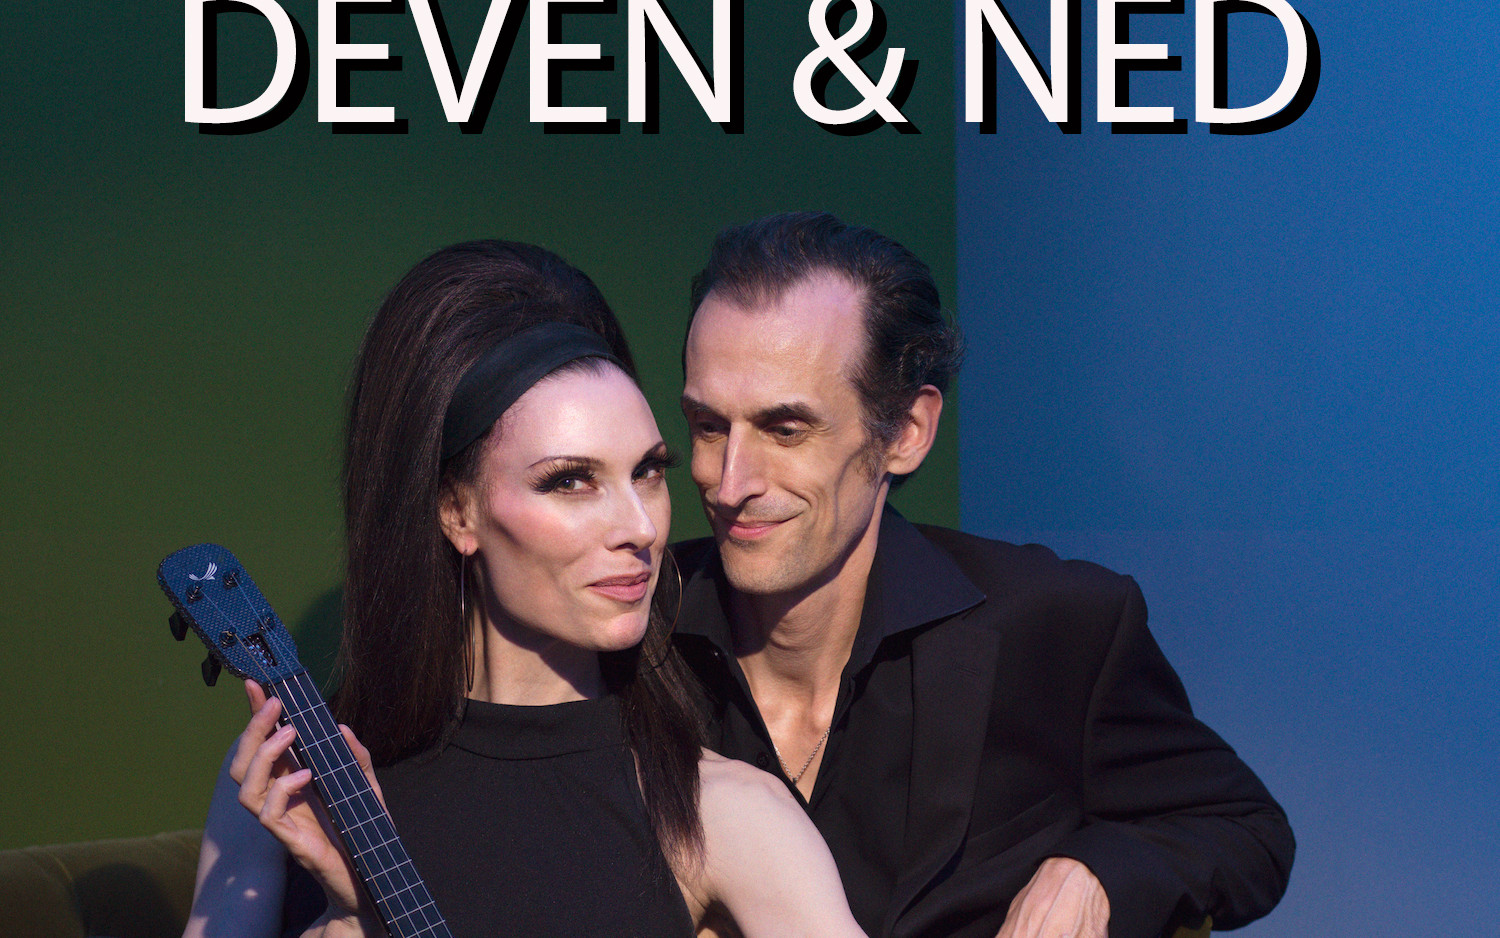 Deven and Ned Music Duo 2019.jpg